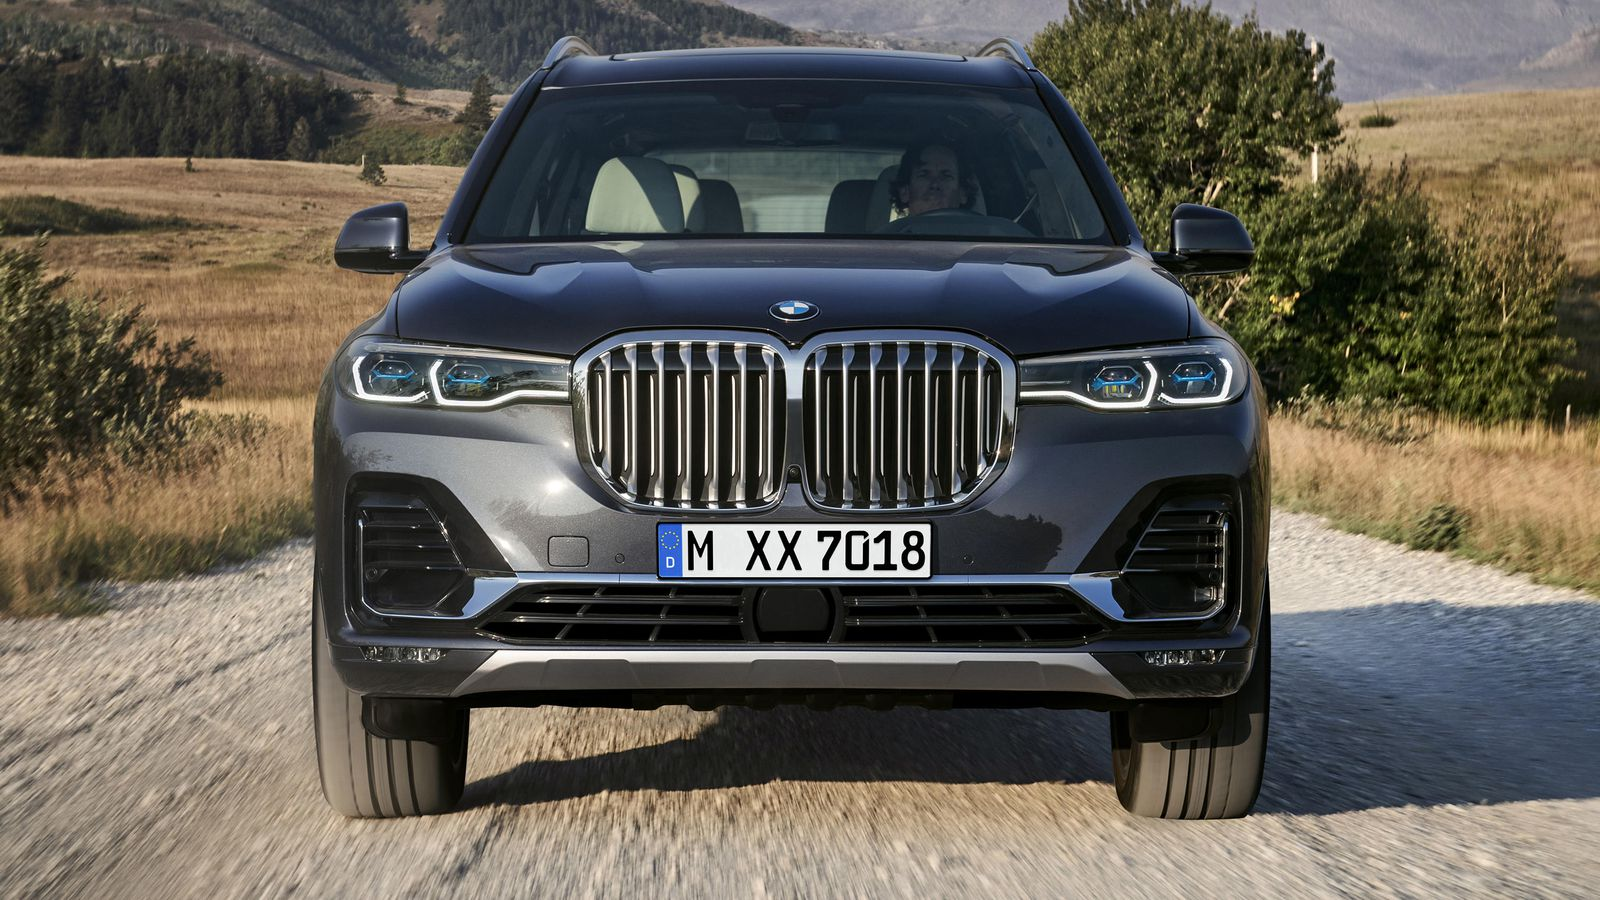 51 Best 2020 BMW X7 Suv Series Specs and Review